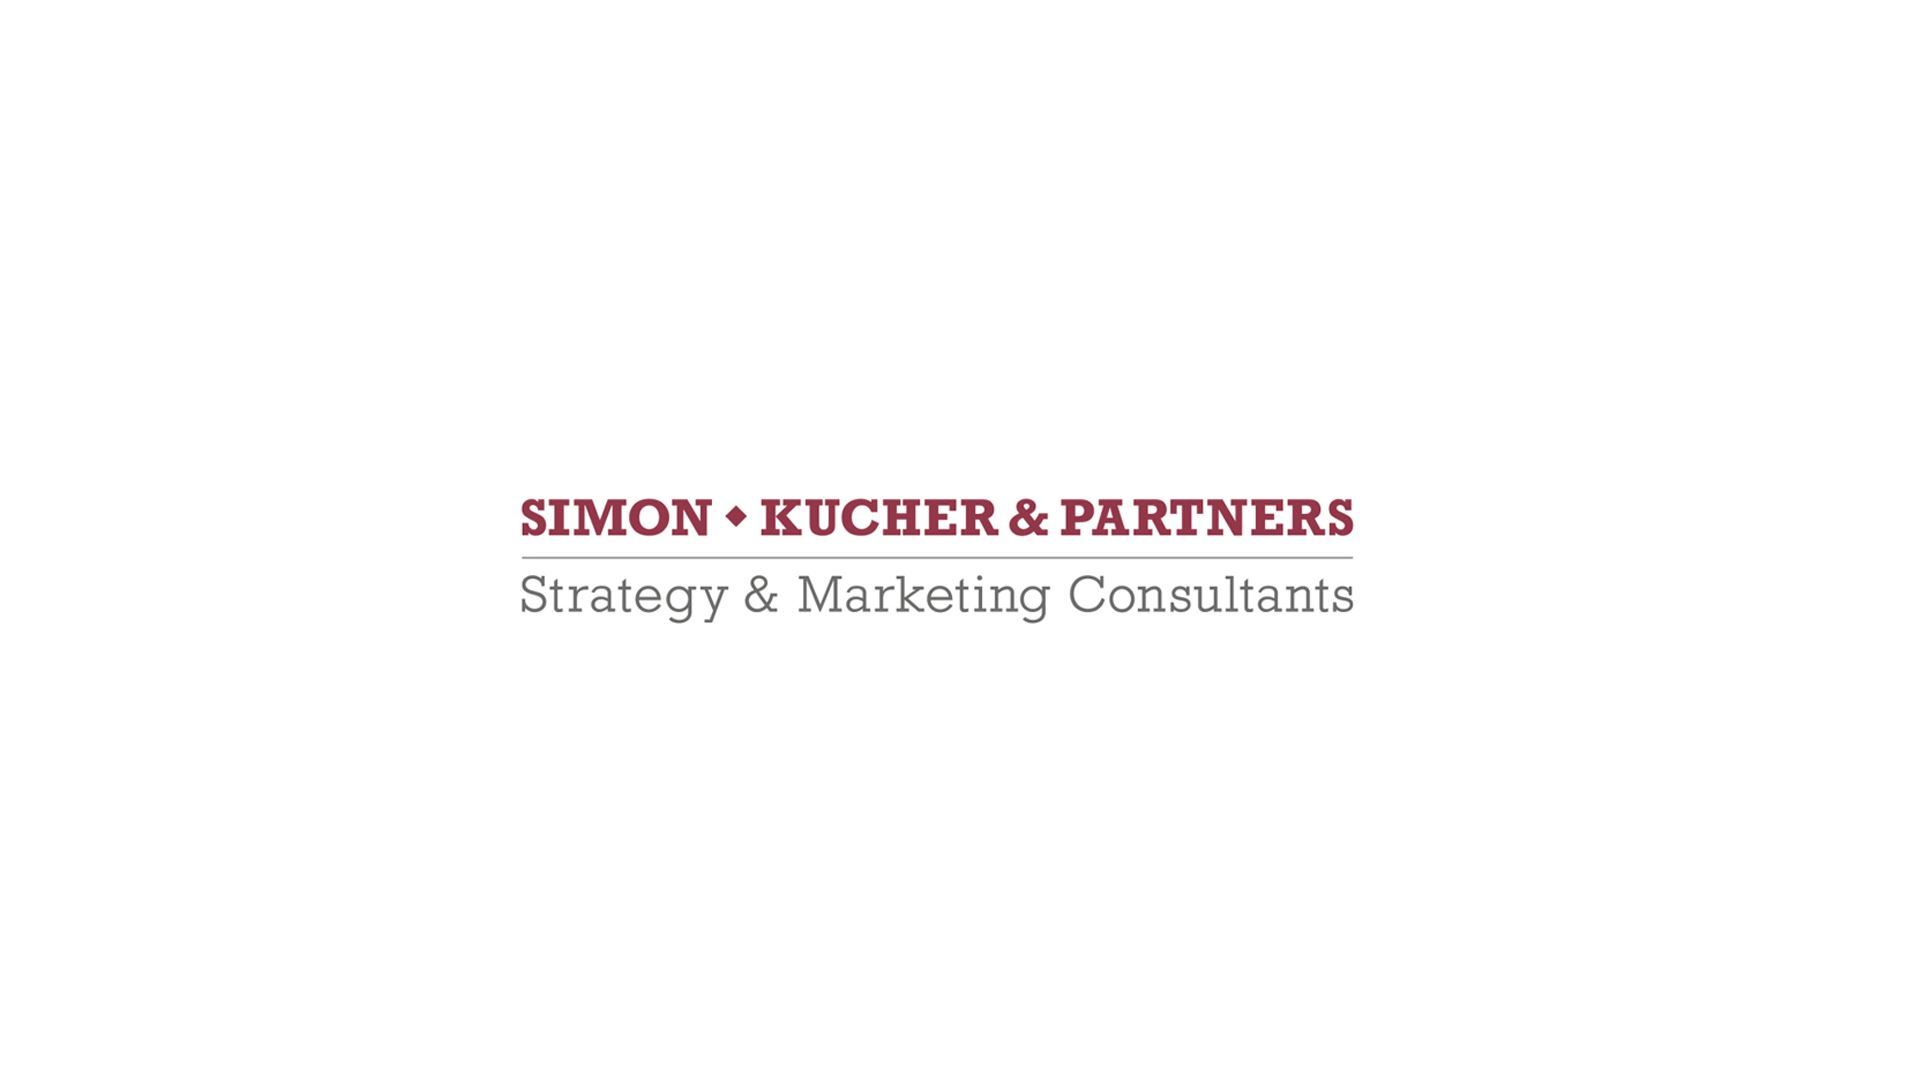 Simon-Kucher & Partners Campus Presentation + Networking Cocktail